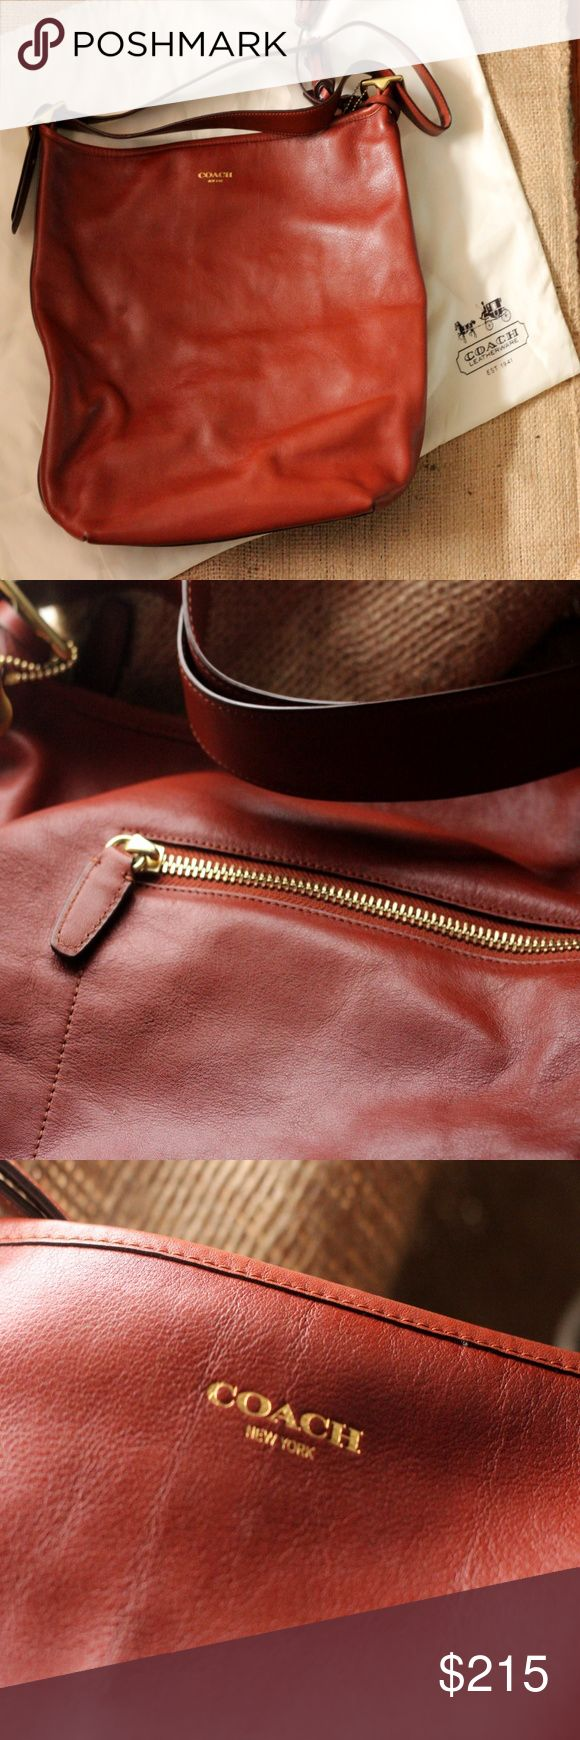 "Brown COACH Legacy LEATHER duffle - (EUC) Cognac brown COACH Legacy large duffle PURSE - excellent used condition. Like new, waiting in a closet for someone FABULOUS to use it. No signs of wear still rocking that fresh leather smell. Silky soft 1.5"" leather strap and tassel details! 14"" high. 15"" Wide. Comes with its original famous Coach dust bag cover! Coach Bags Totes"